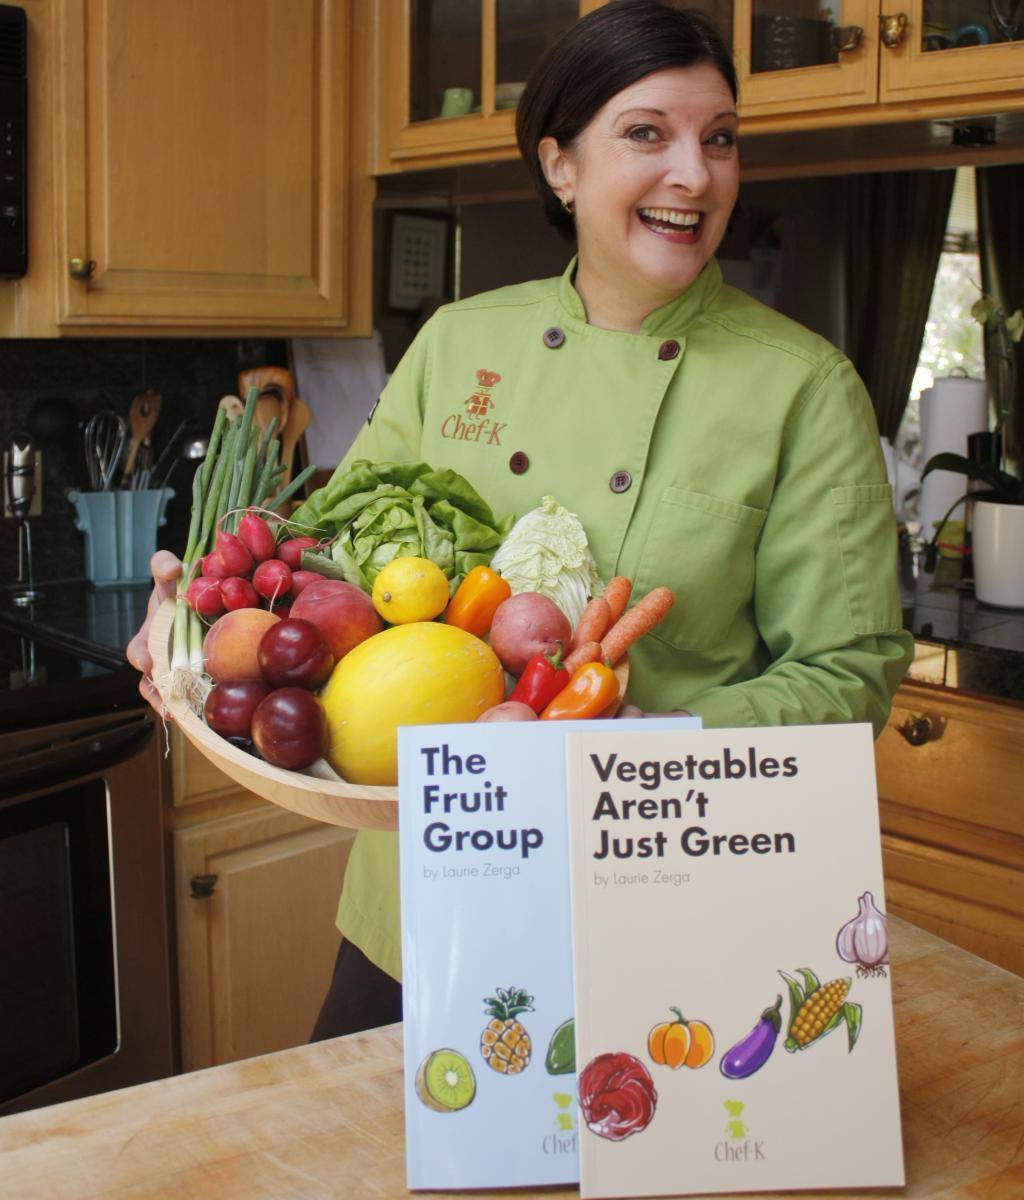 Chef-K Book Store - Children's Books - Vegetables Book & Kid's Fruit Group Book